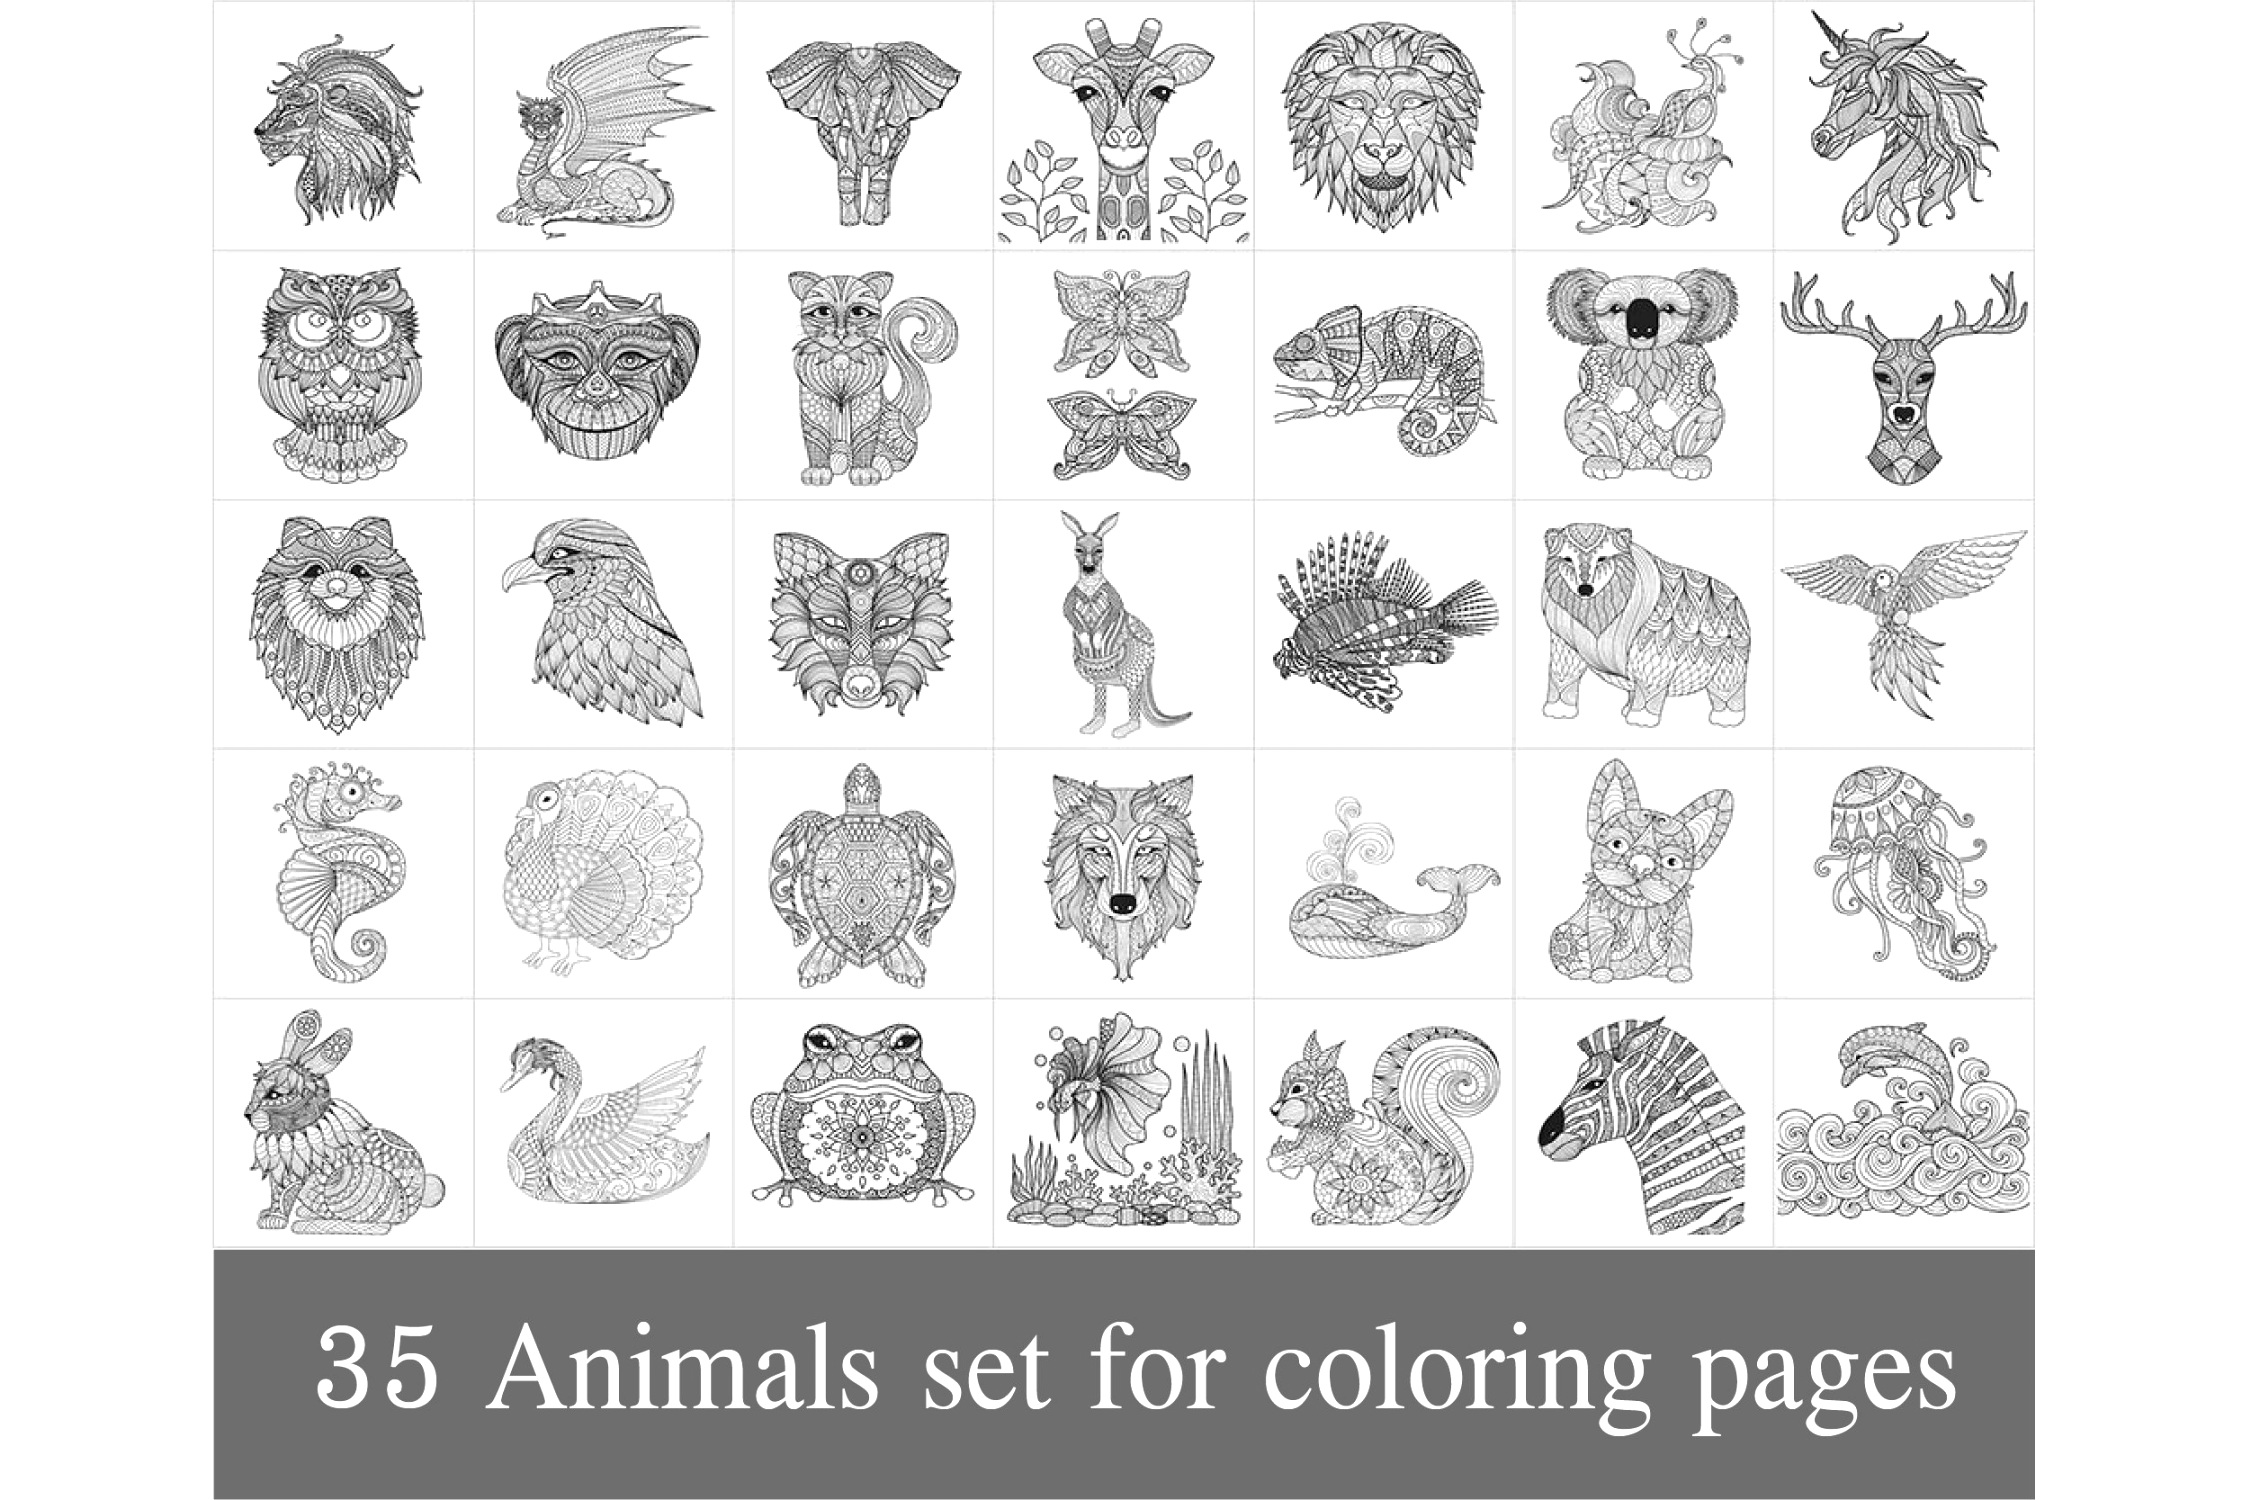 amazing animal coloring pages to color your life